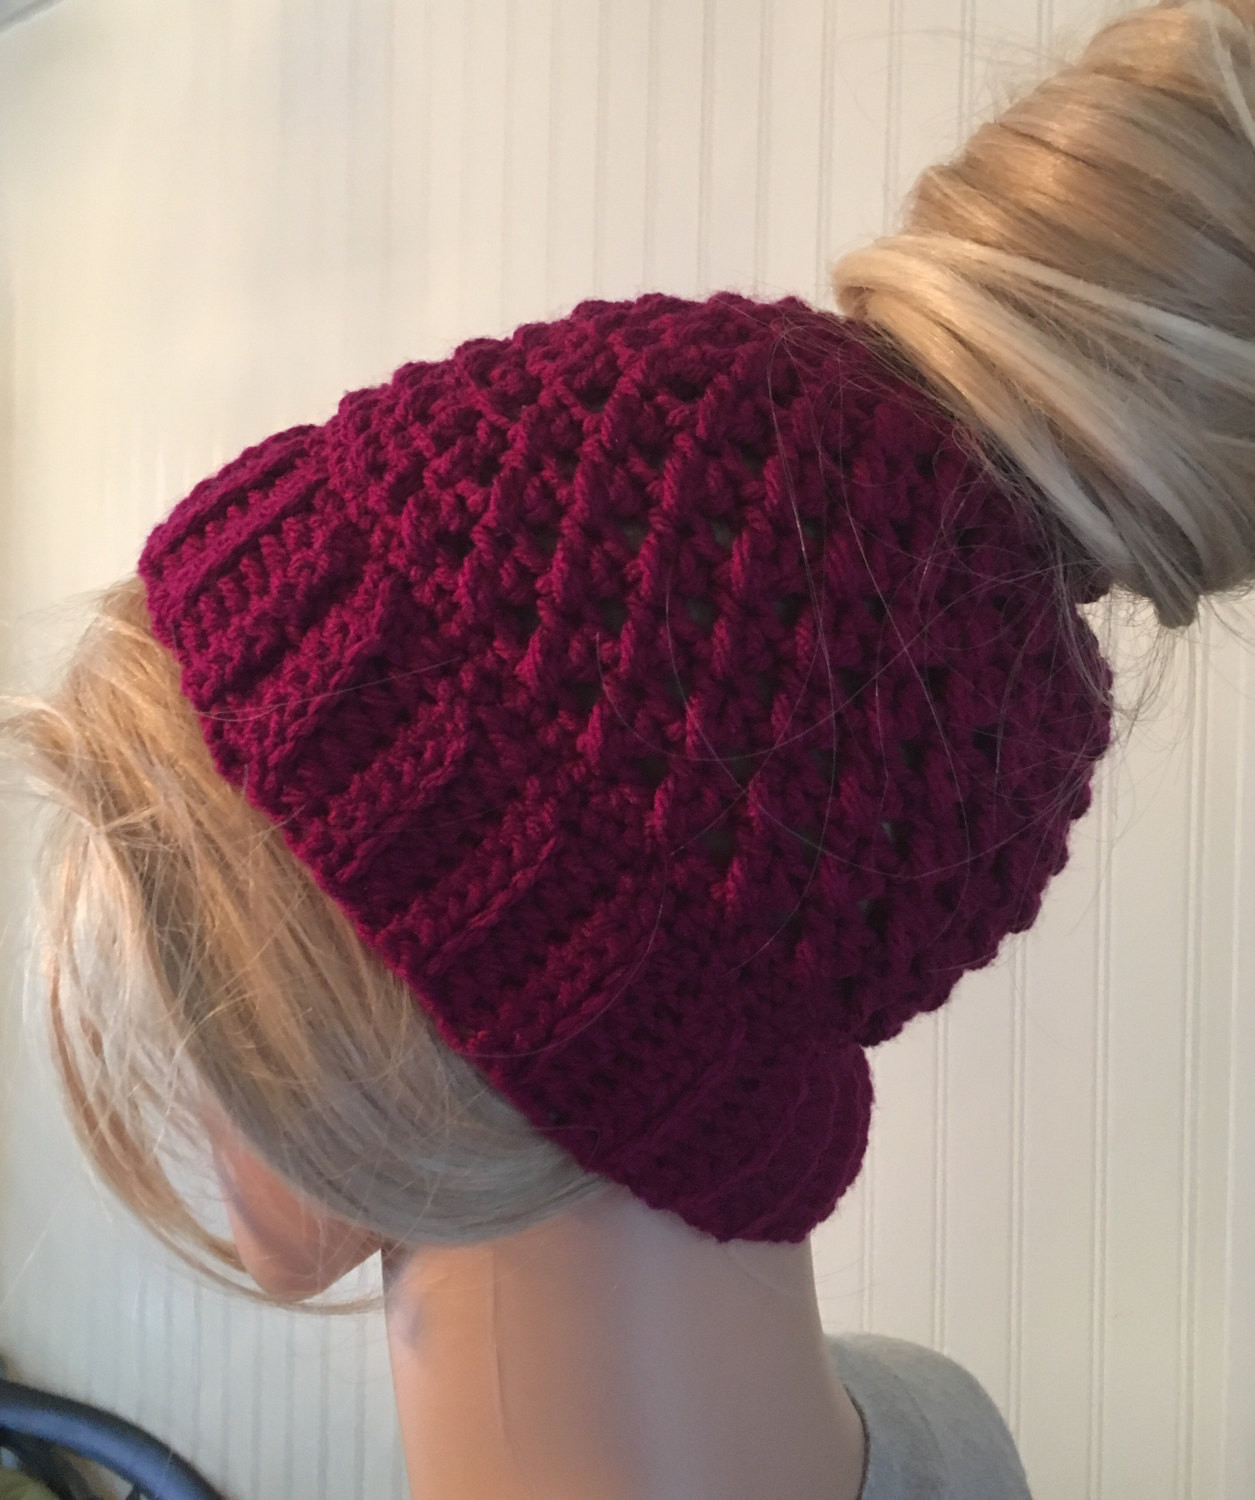 Crochet Messy Bun Beanie New Messy Bun Beanie Ponytail Hat Crochet Bun Hat Messy Bun Of New 43 Photos Crochet Messy Bun Beanie